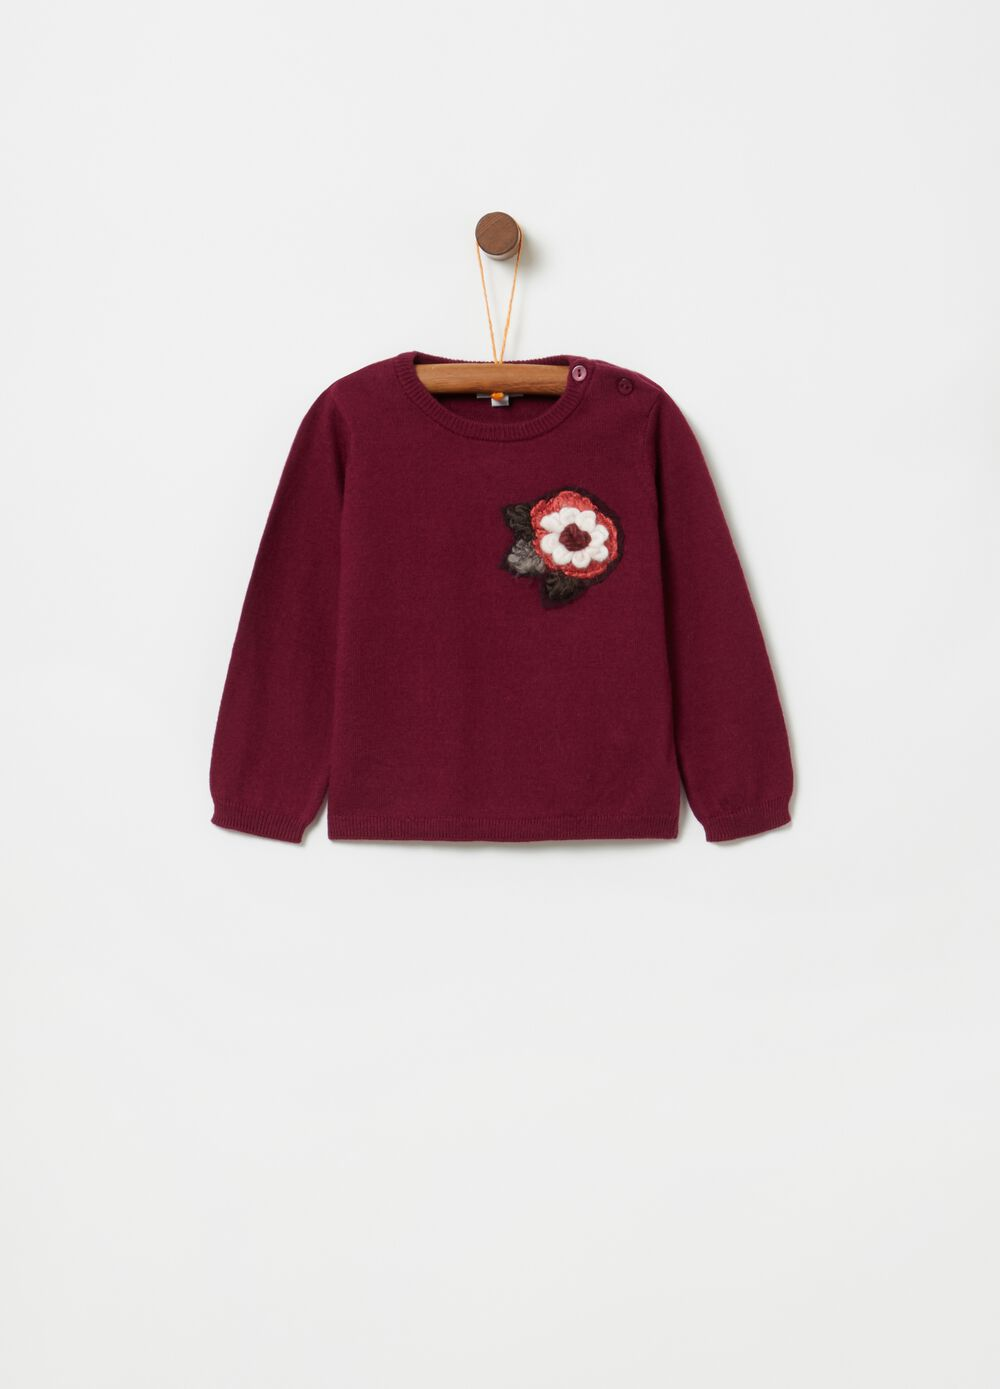 Knitted top with floral application